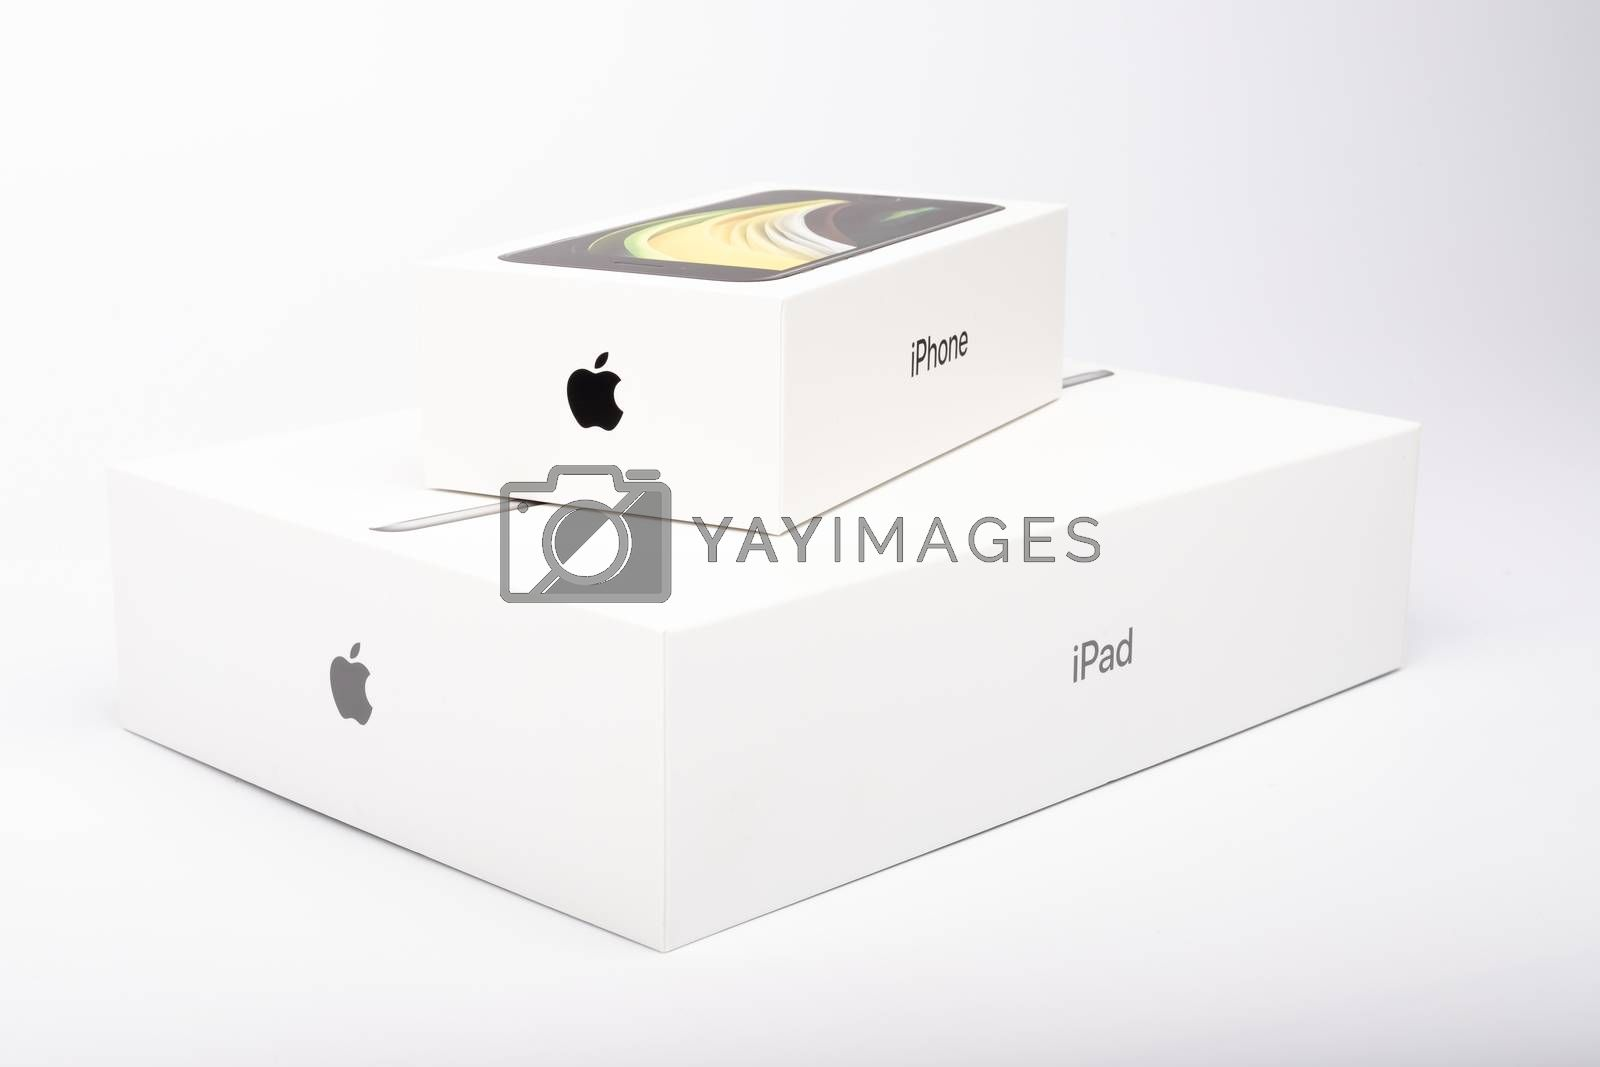 Paris, France - May 14, 2020: packaging of the new black iPhone SE 2020 and iPad from the multinational company Apple during the days of its studio release on a white background